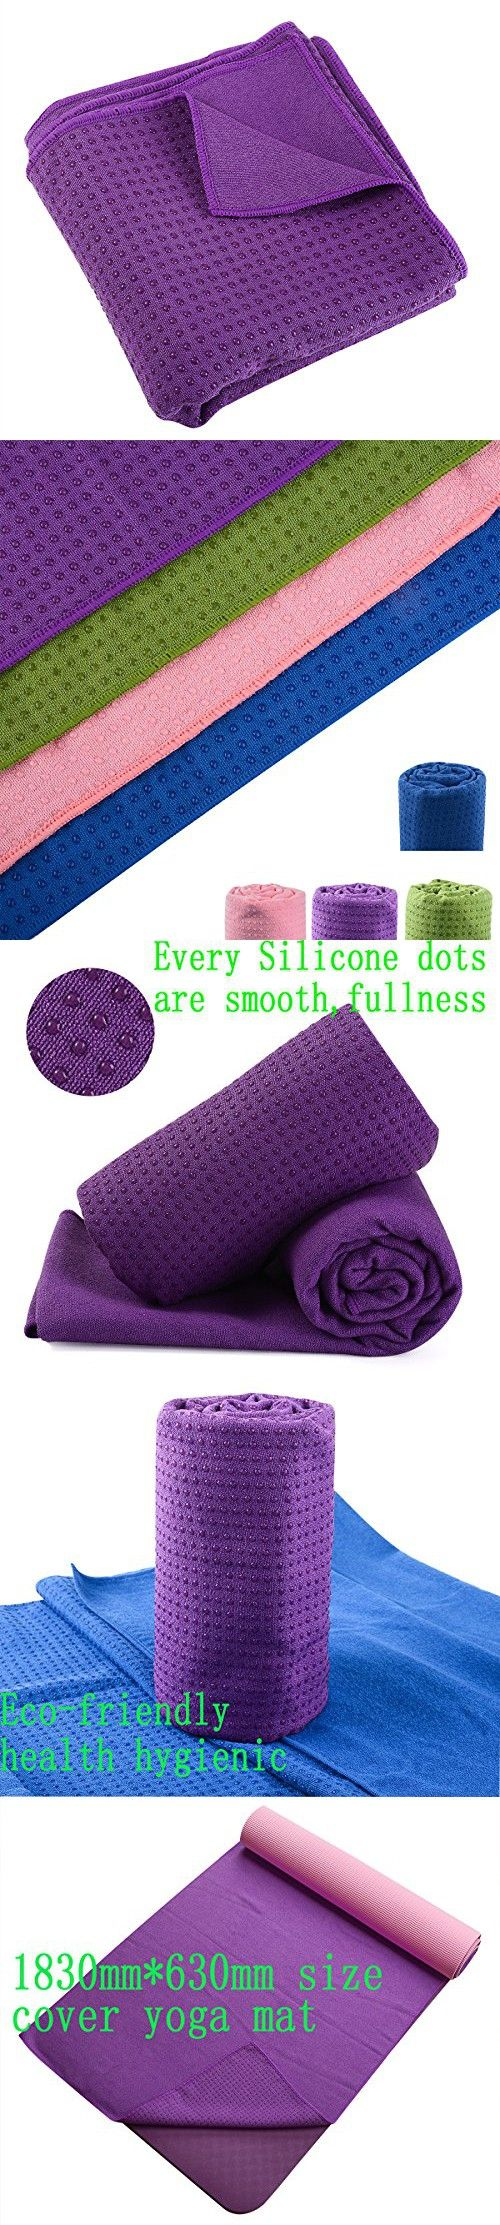 """Yoga Mat Towel 100% Microfiber with Silicone Beads Purple(72""""x26"""") Ultra Absorbent Anti-slip Fast Drying with Ultra Firm Grip for Hot Yoga Pilates Workout Exercise with Free Carry Bag"""